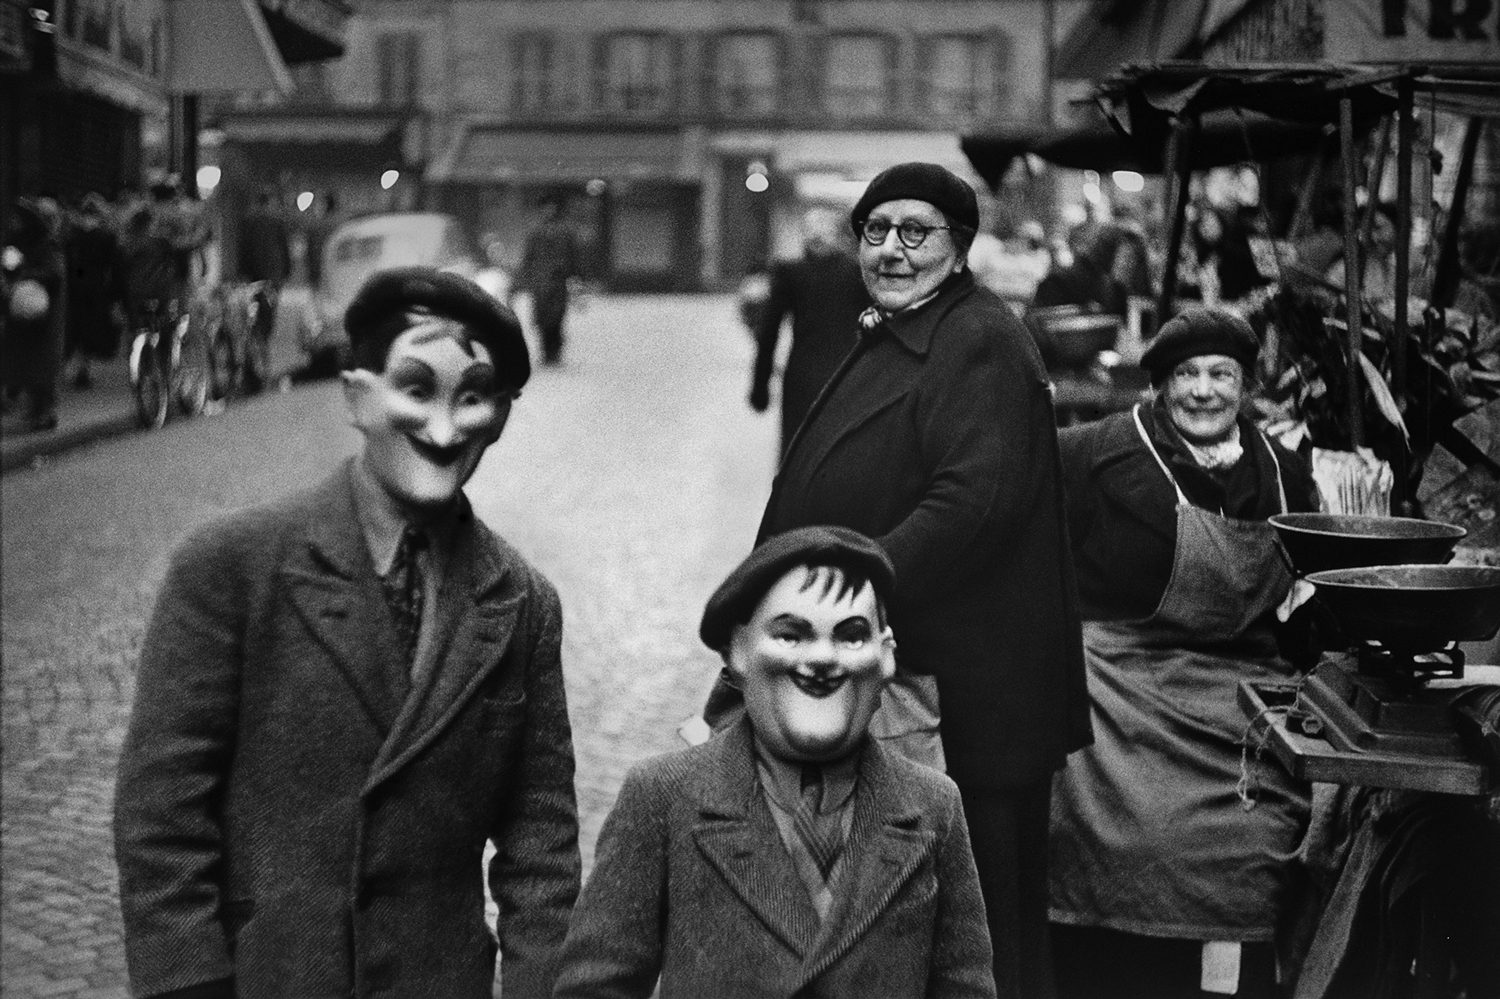 Paris, France (children with masks)